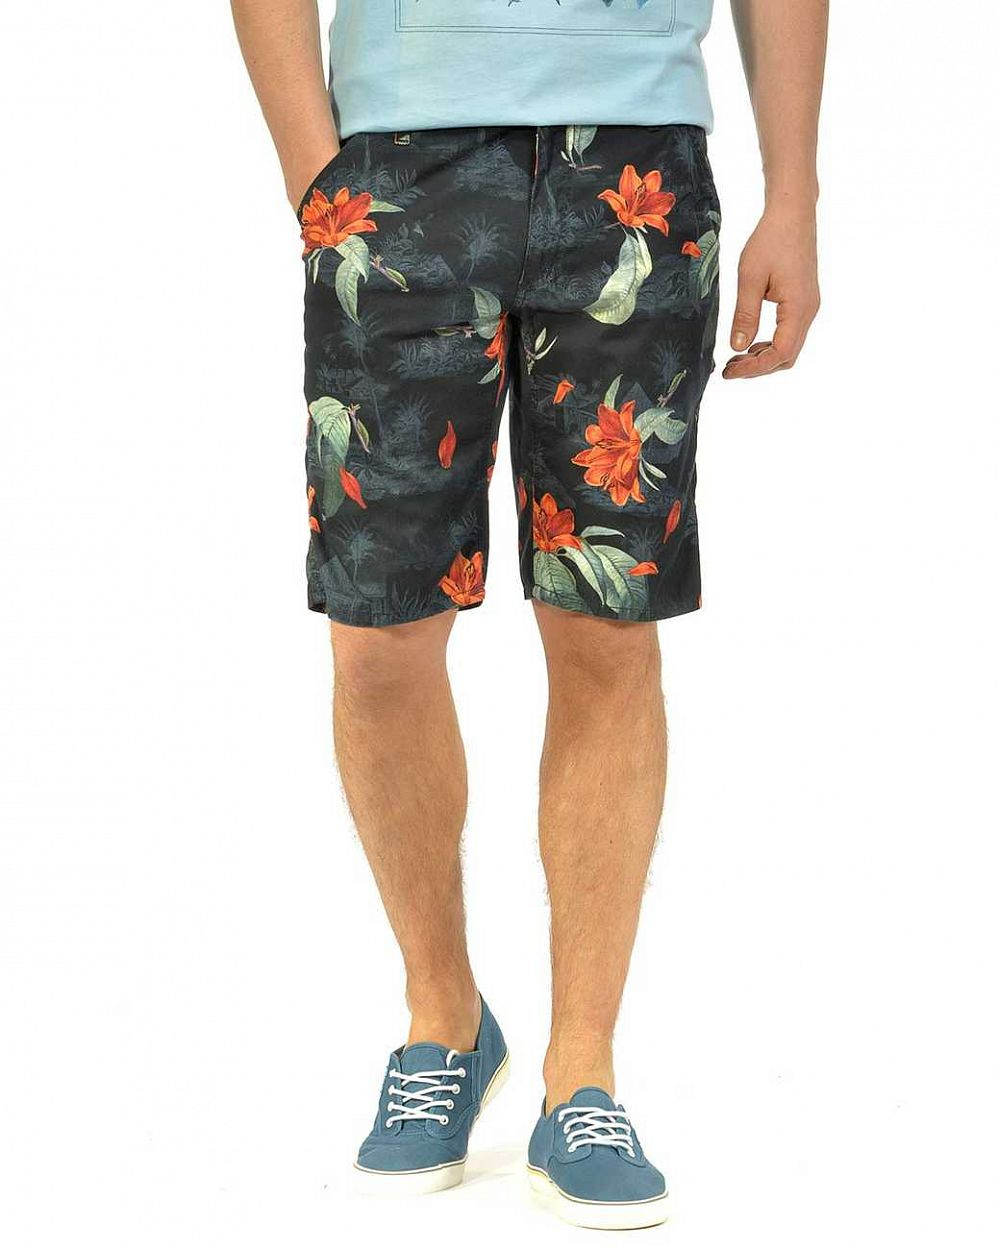 Шорты бермуды Carhartt WIP Lincoln Knee Milford Twill 5 Oz Tropic Print отзывы